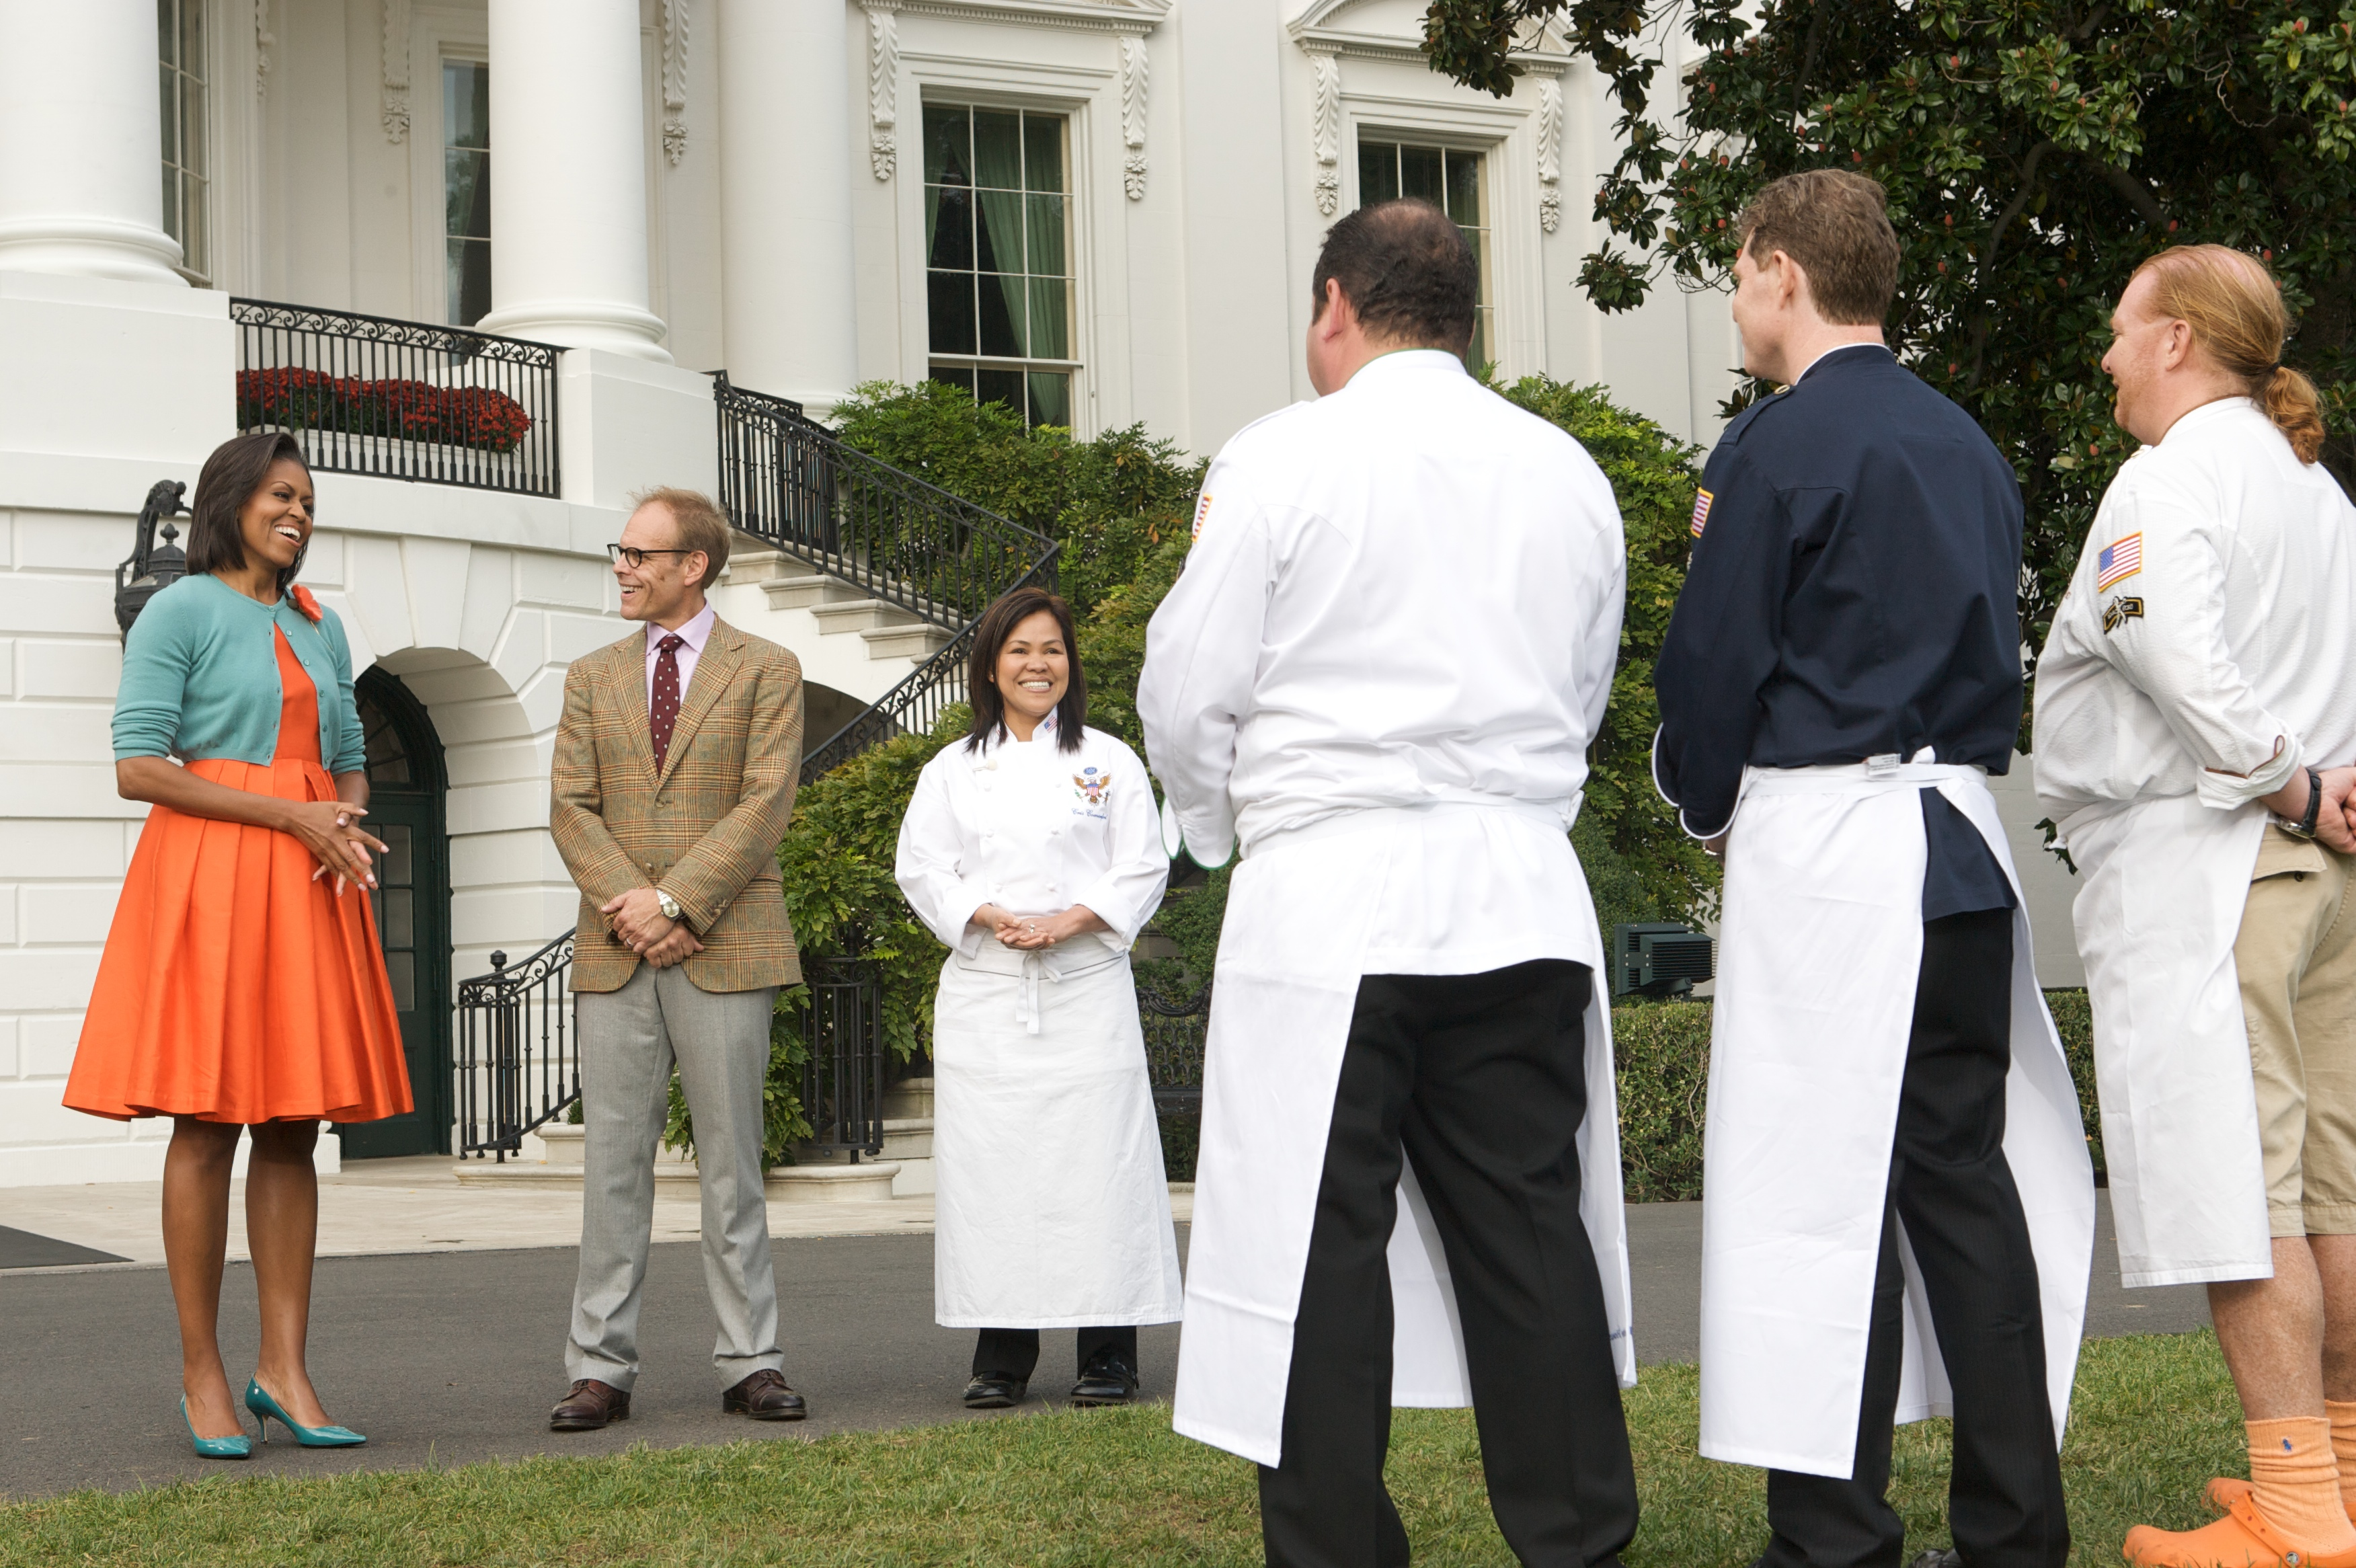 Iron Chef at the White House